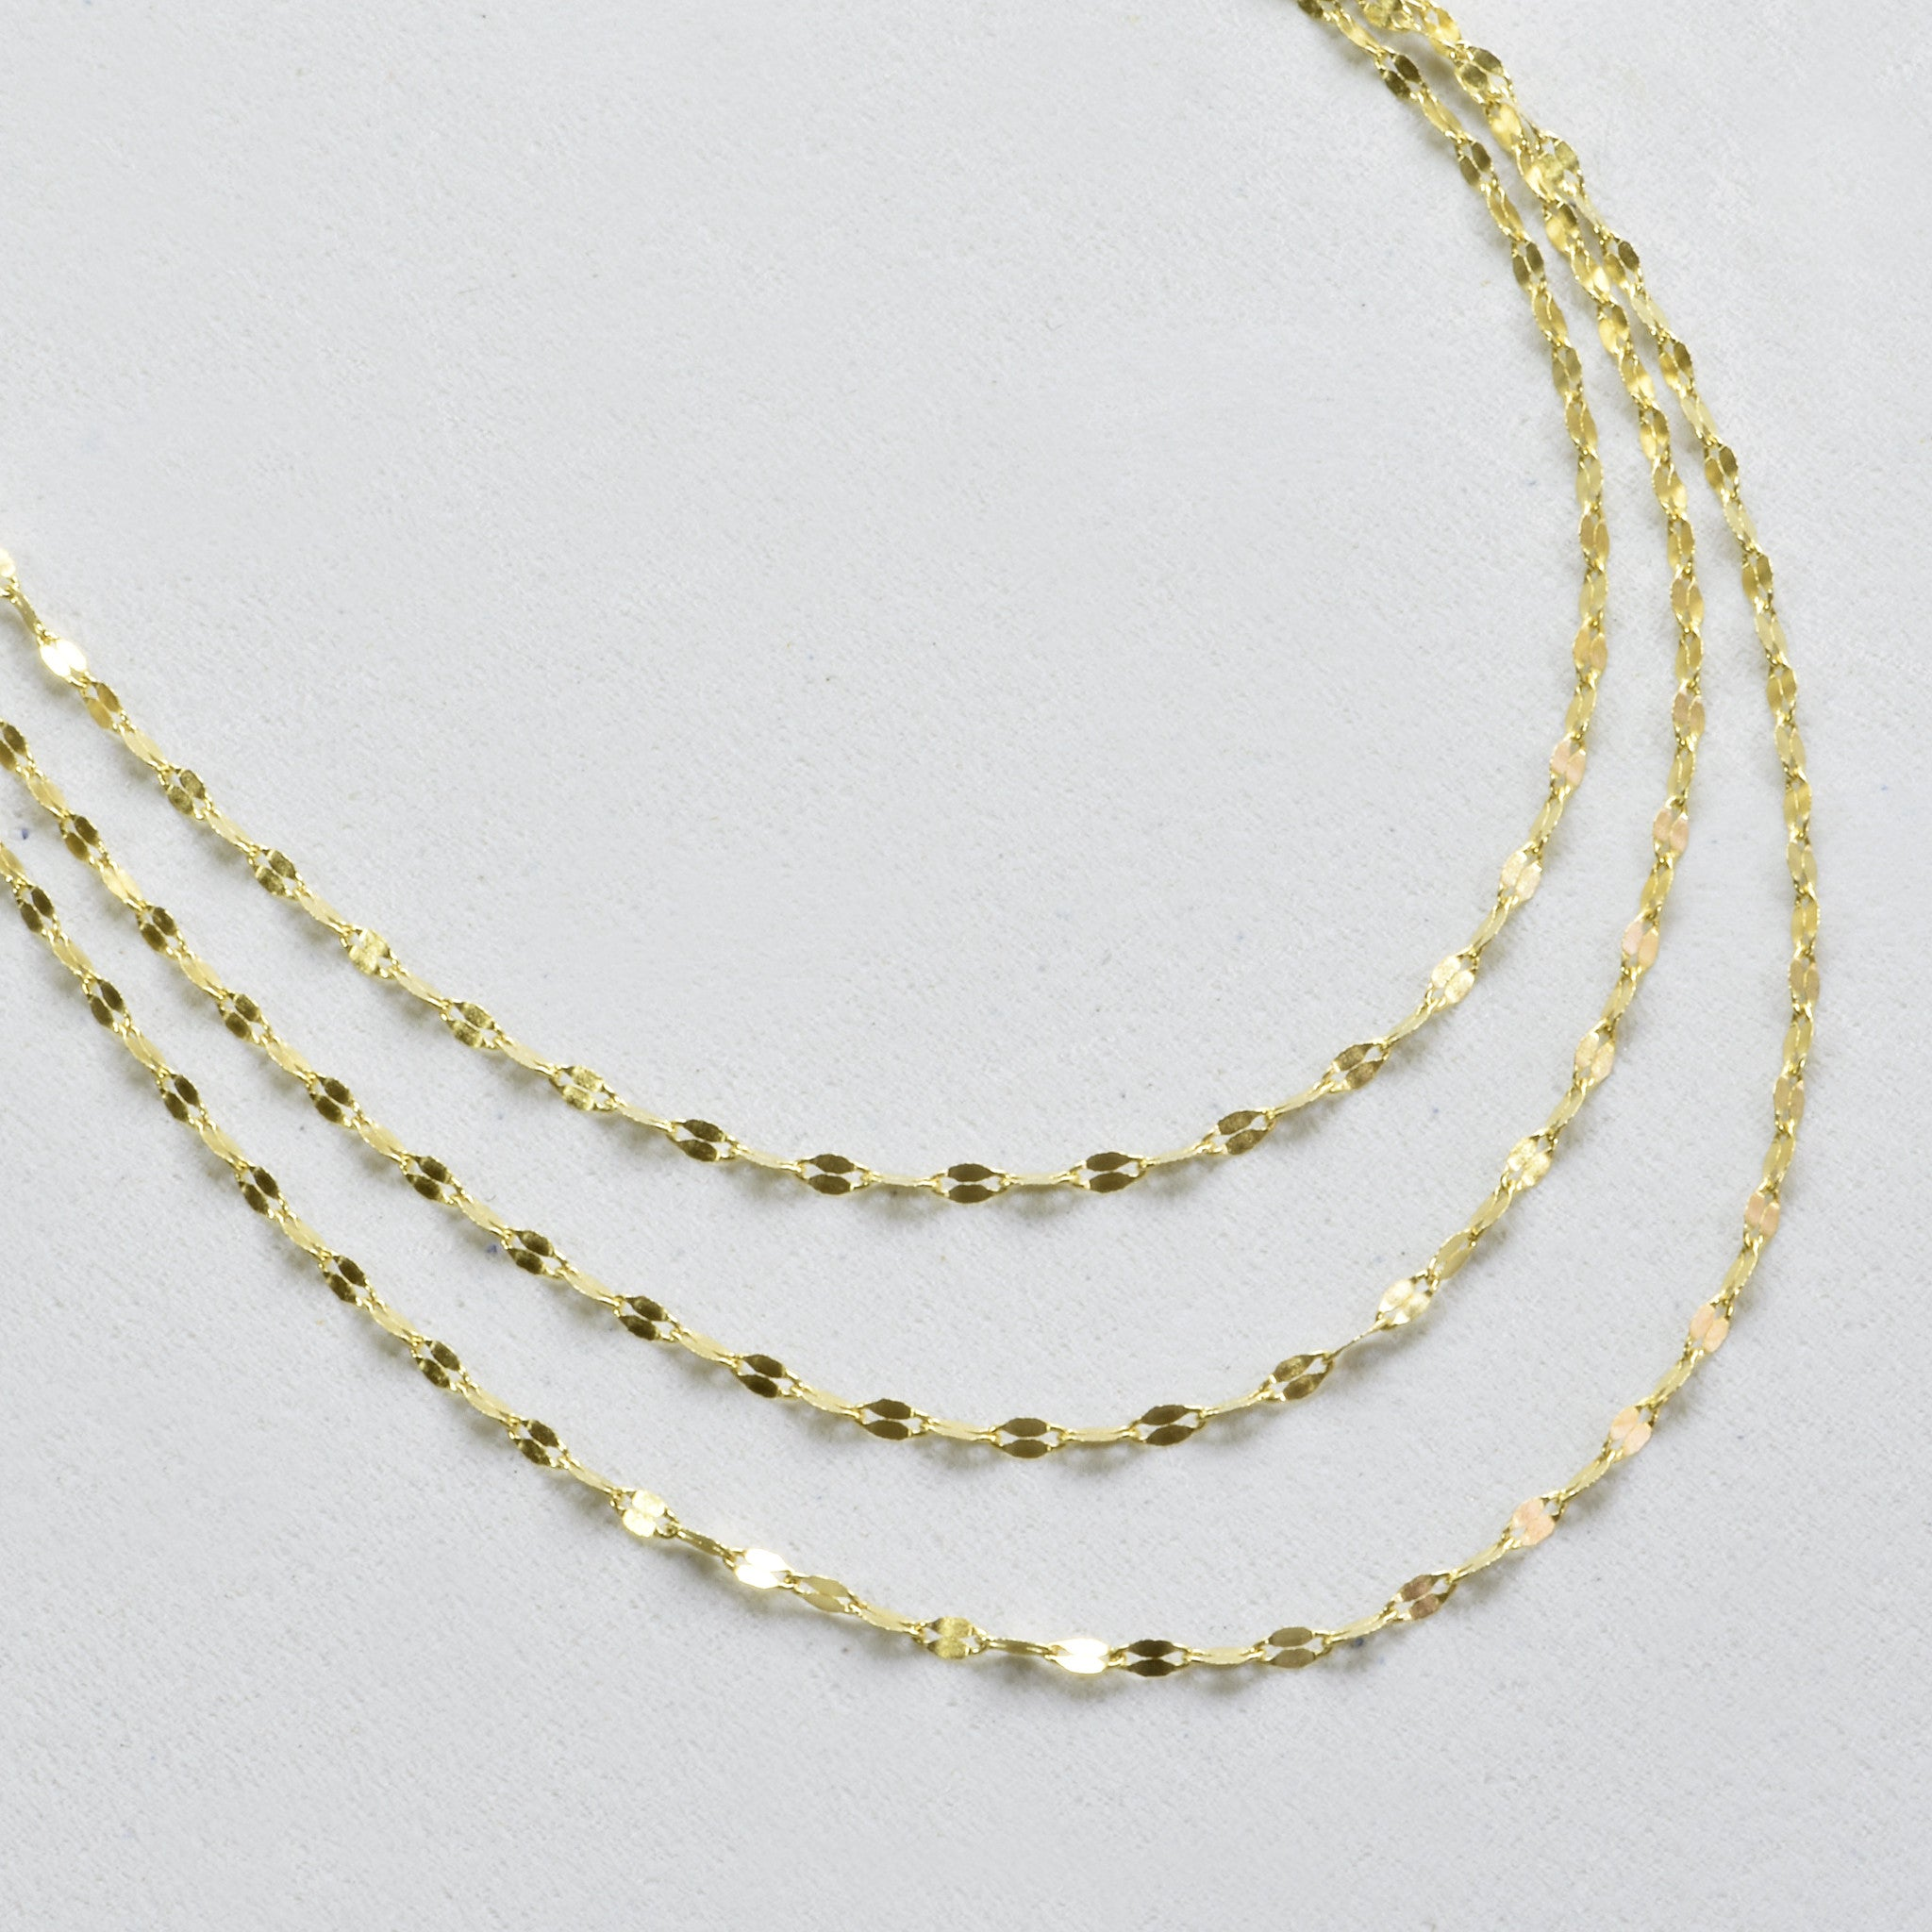 gold chains necklace jewelry christie lot details bulgari by s three gnv lotfinder